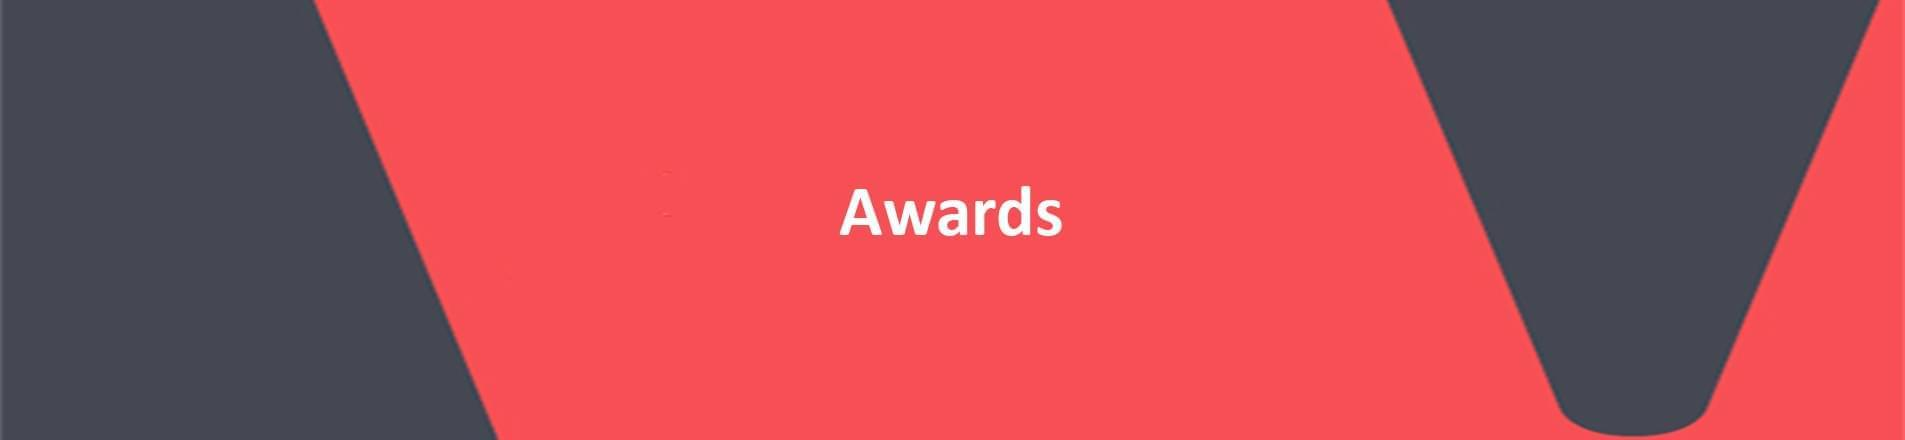 The word Award on a red VERCIDA branded background